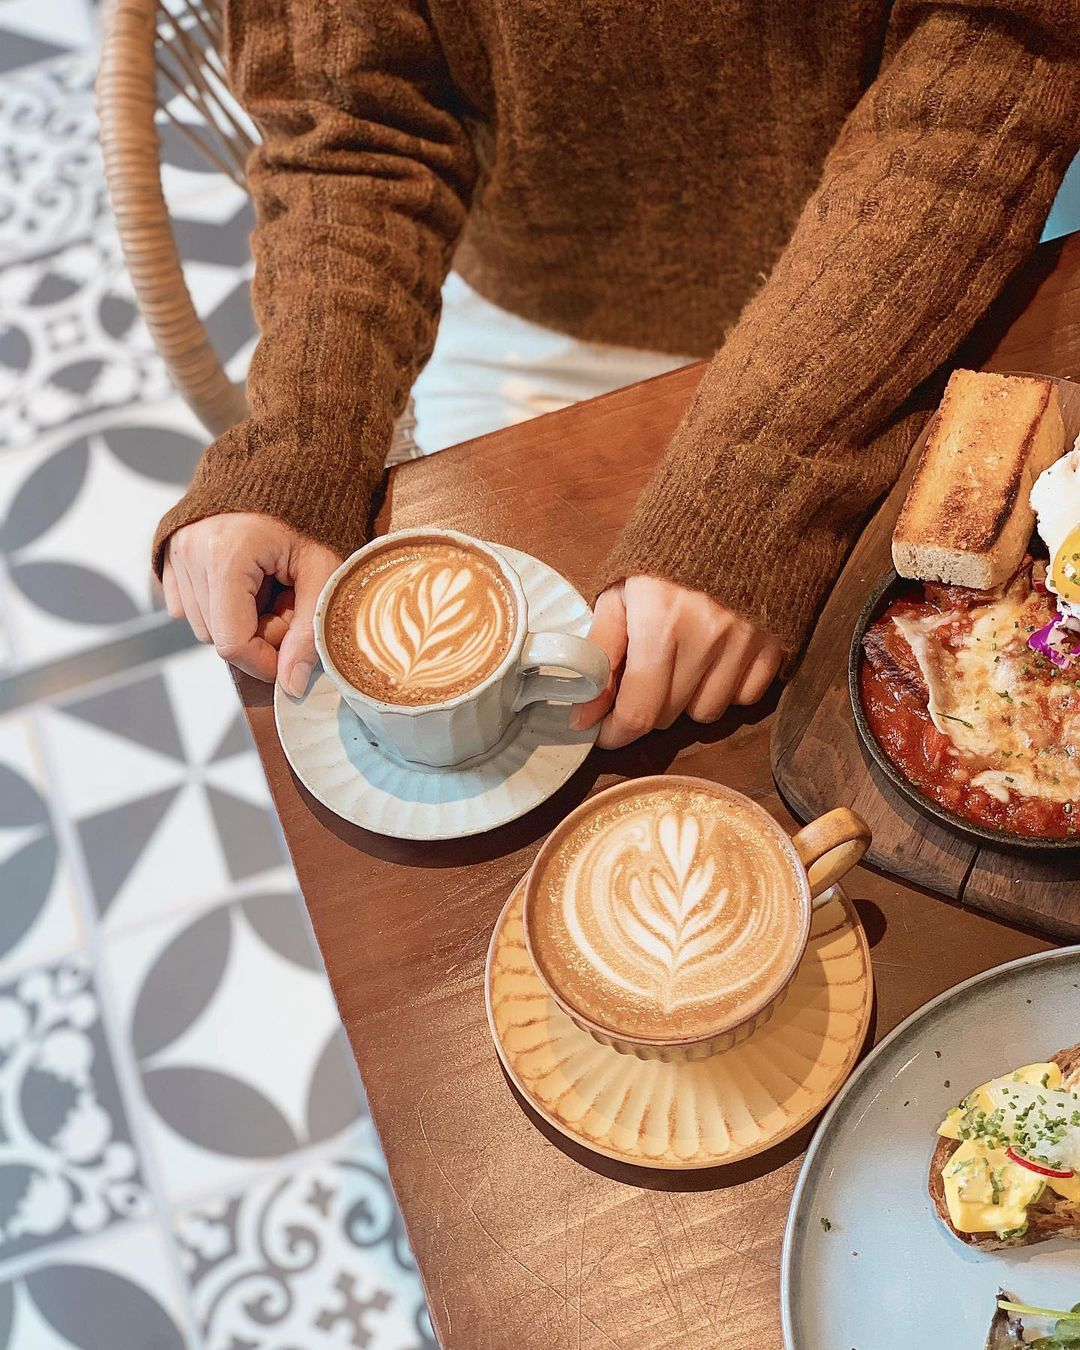 The Best Cafes And Coffee Shops In Causeway Bay